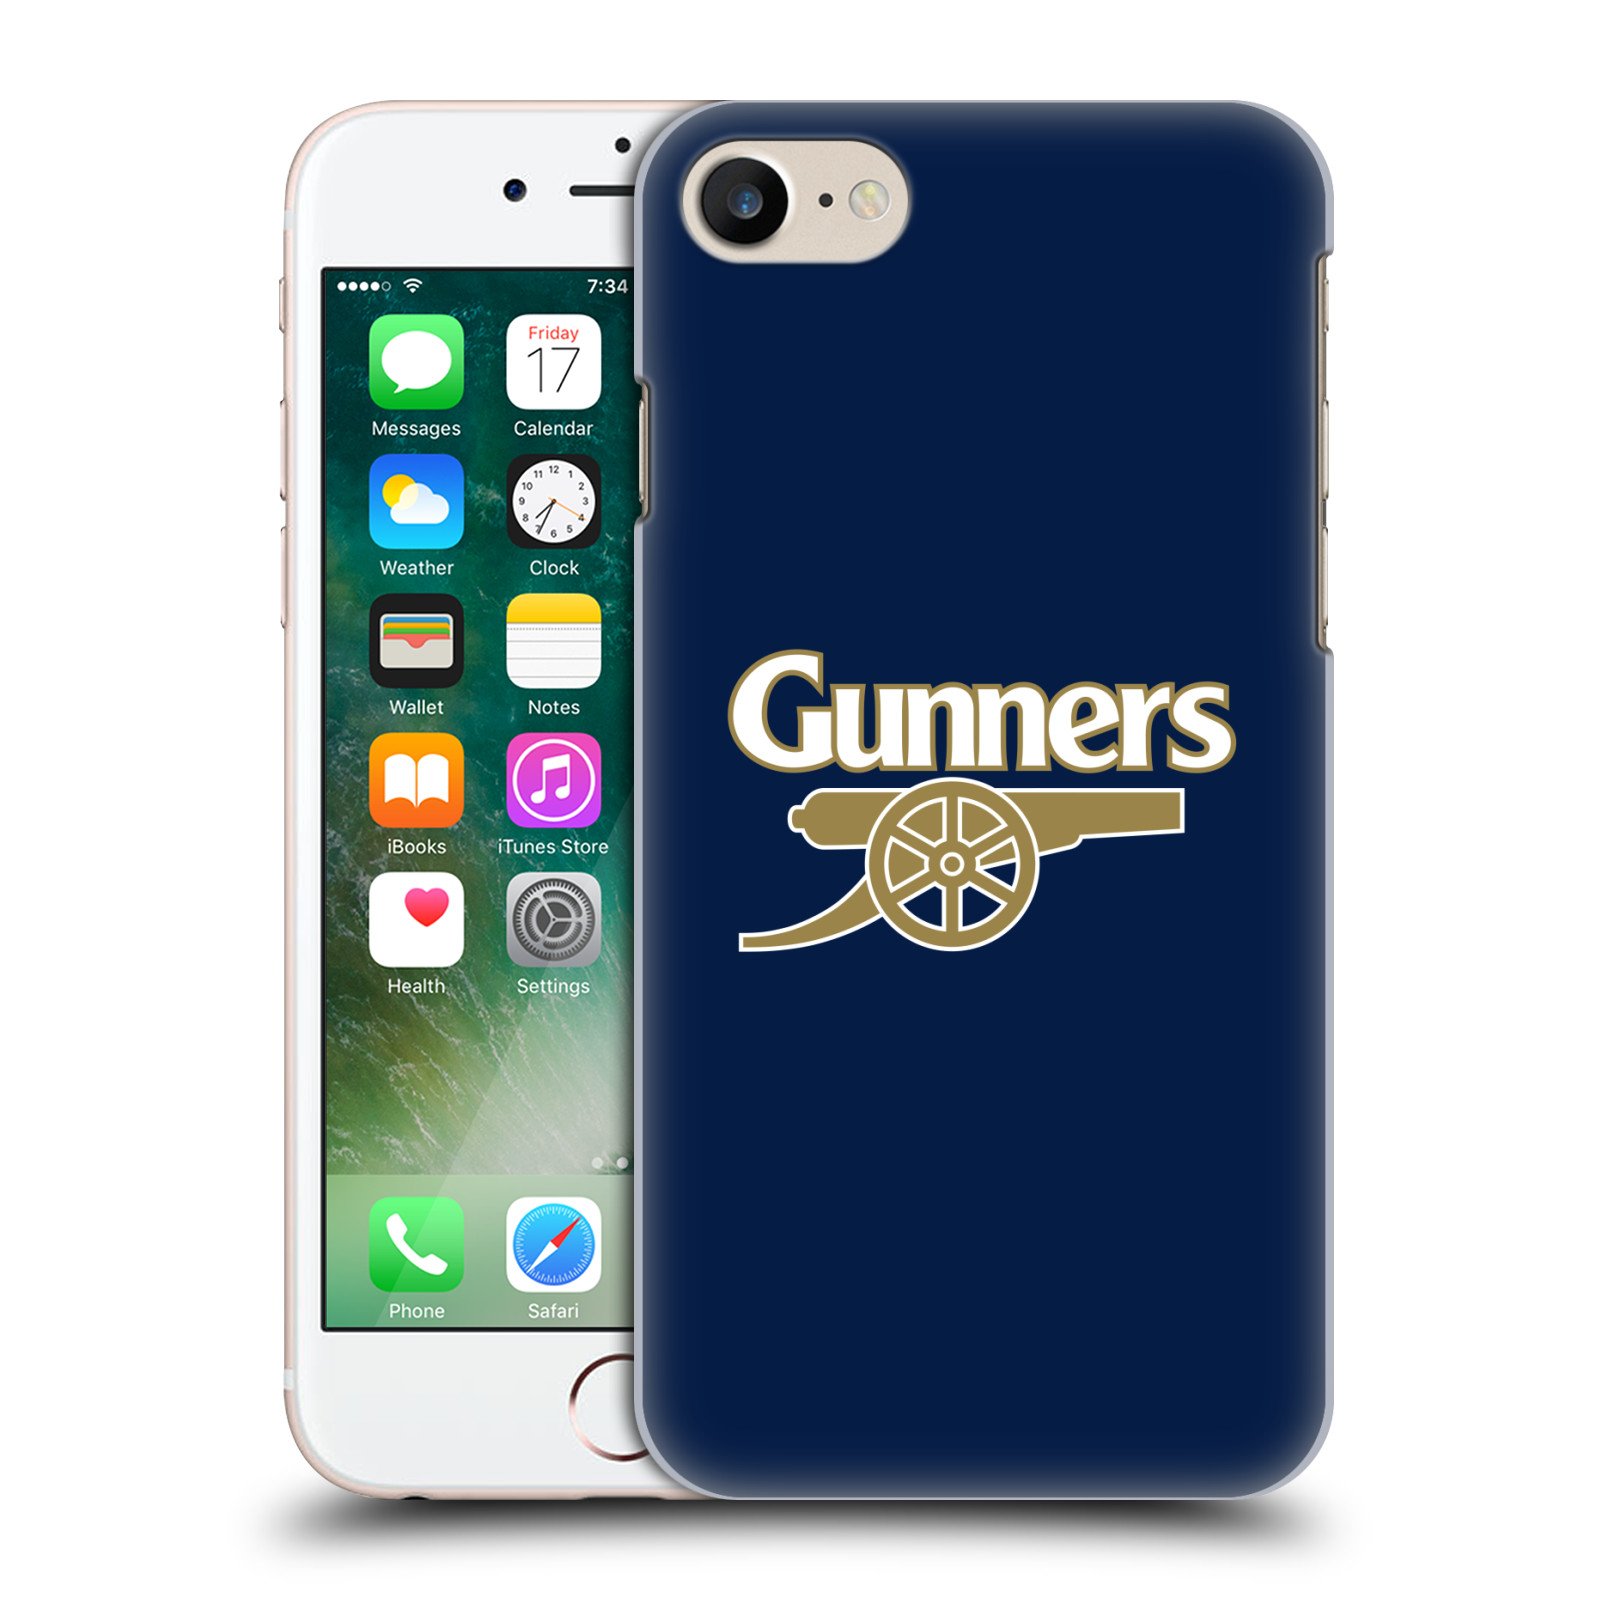 Plastové pouzdro na mobil Apple iPhone 7 - Head Case - Arsenal FC - Gunners